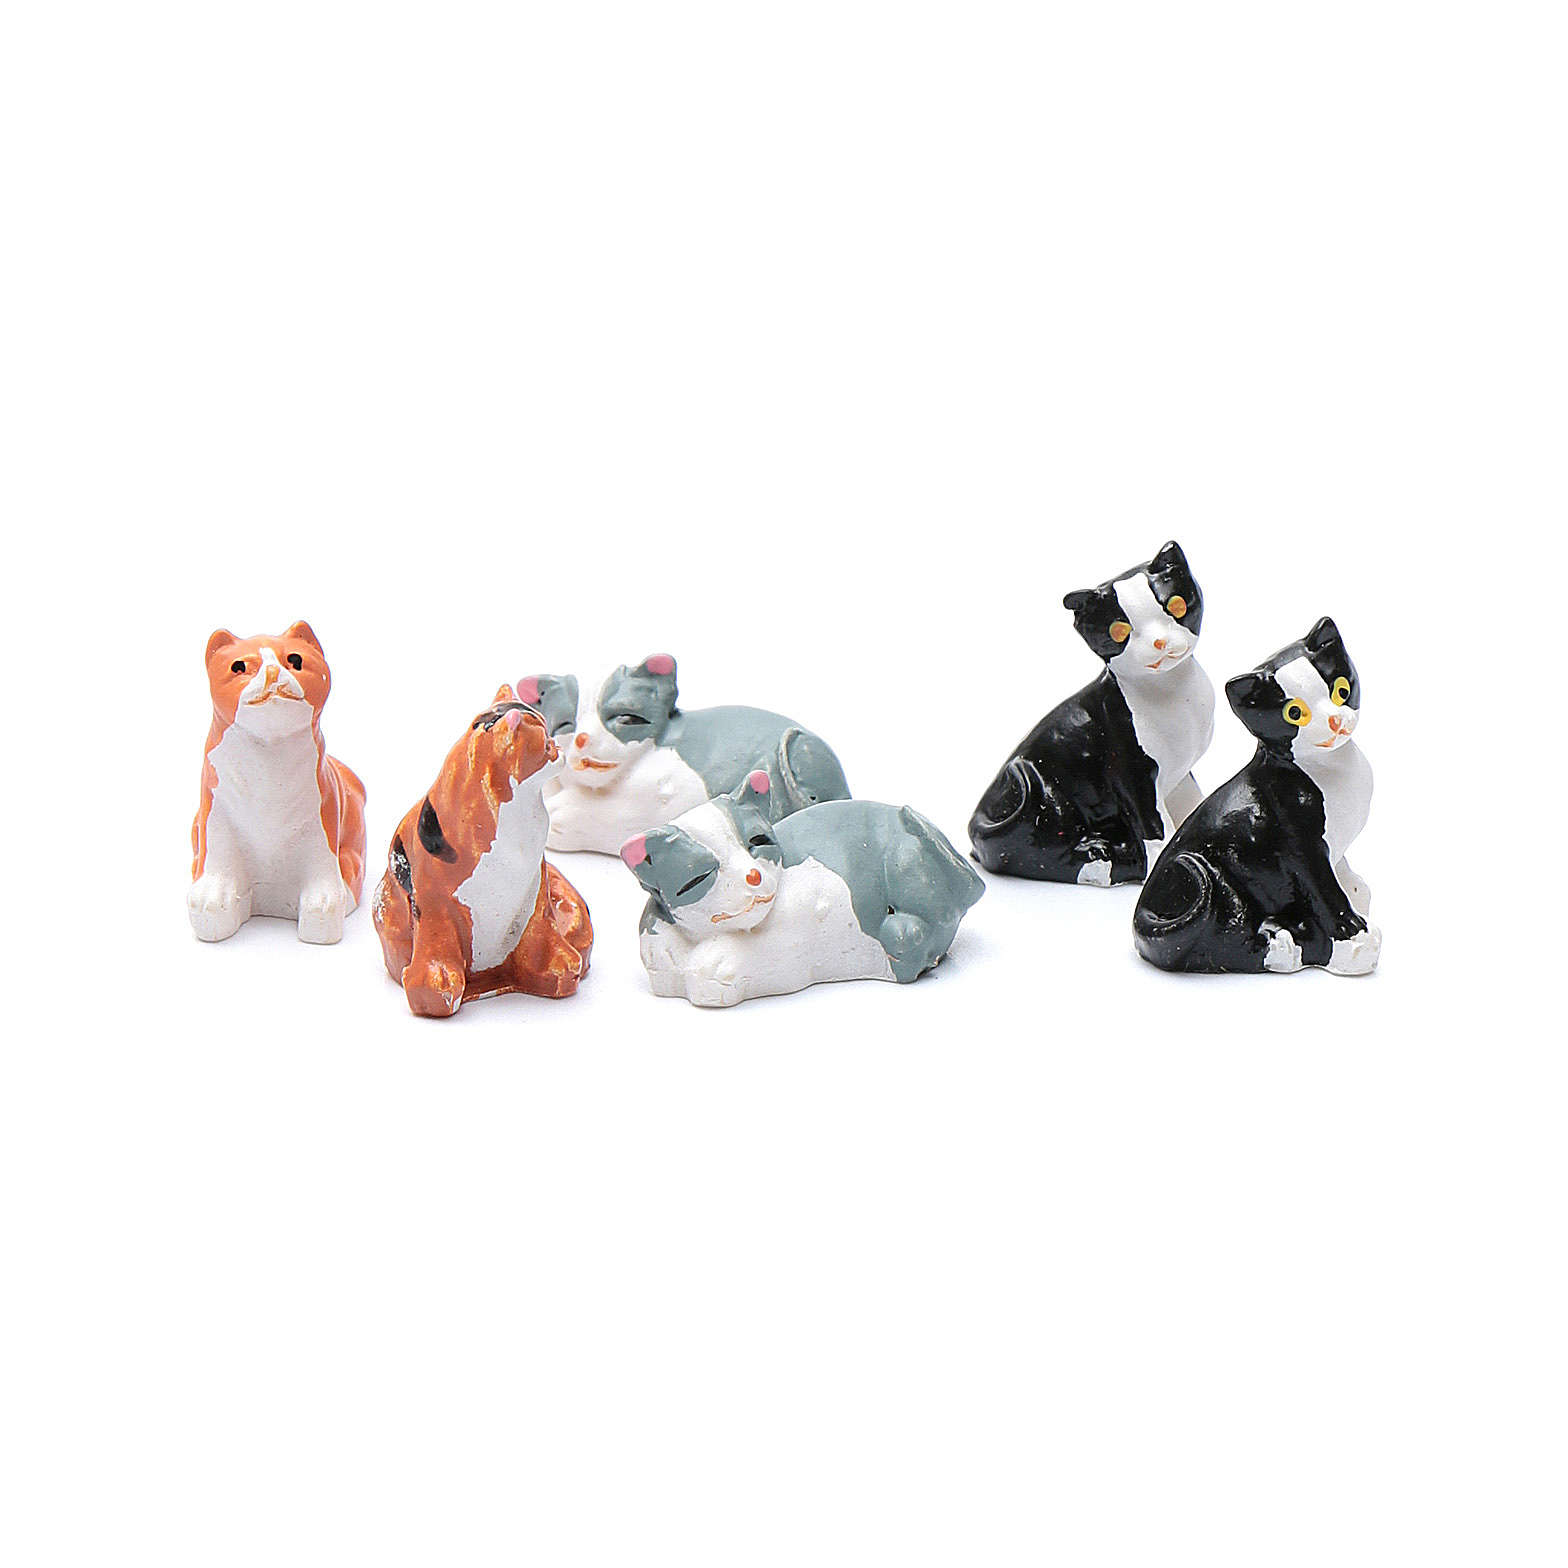 Cats in resin measuring 2 cm, 6 figurines 3